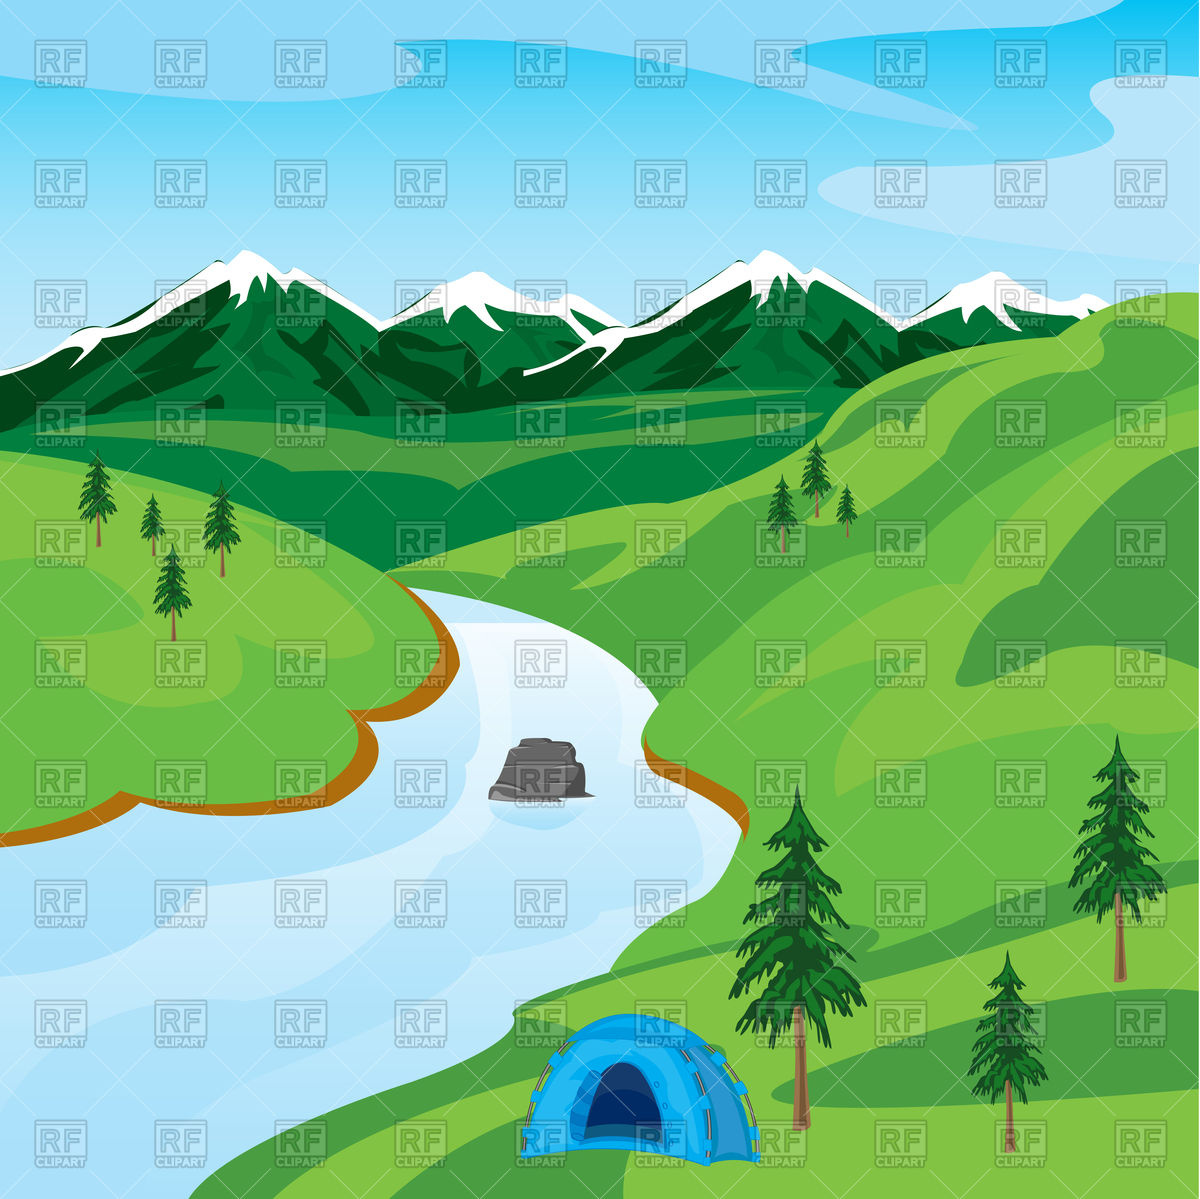 River clipart #13, Download drawings